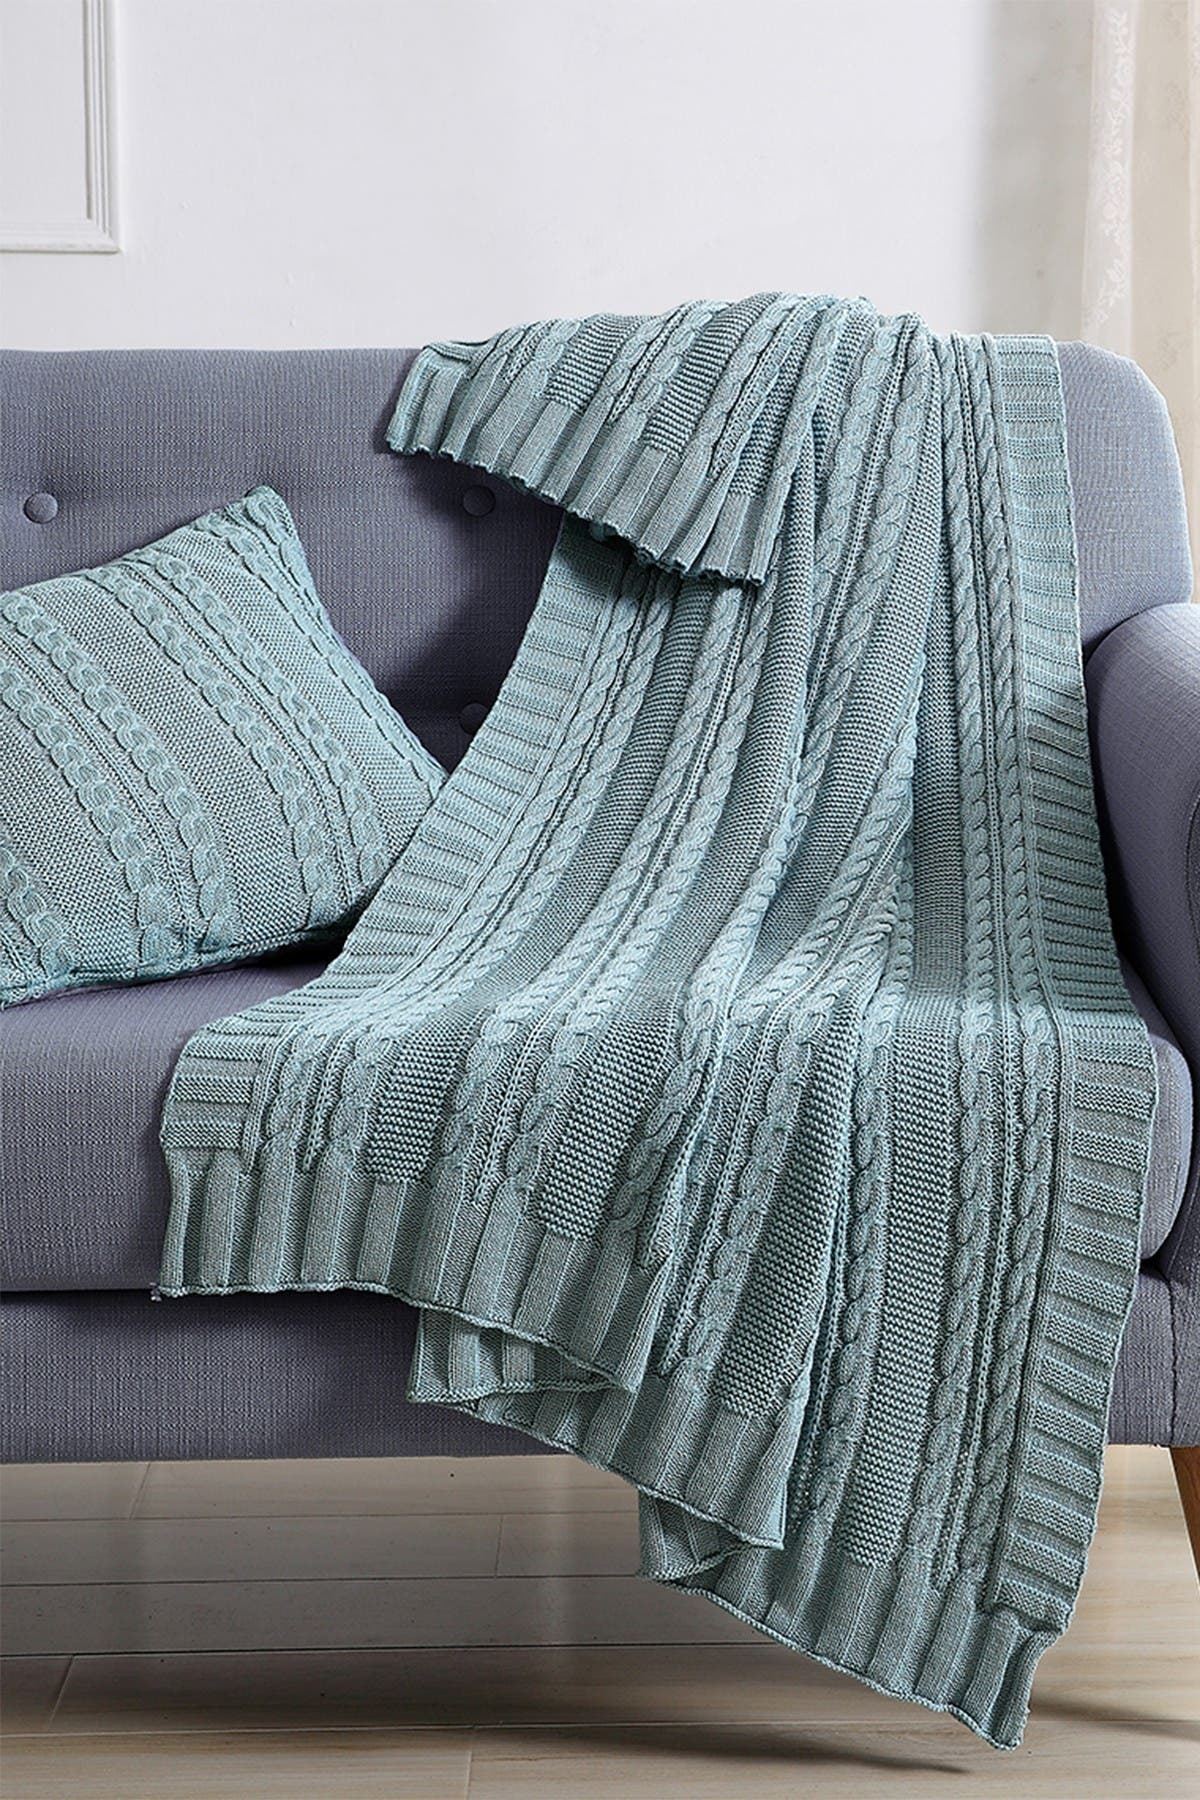 Image of VCNY HOME Dublin Cable Knit Throw Blanket - Blue